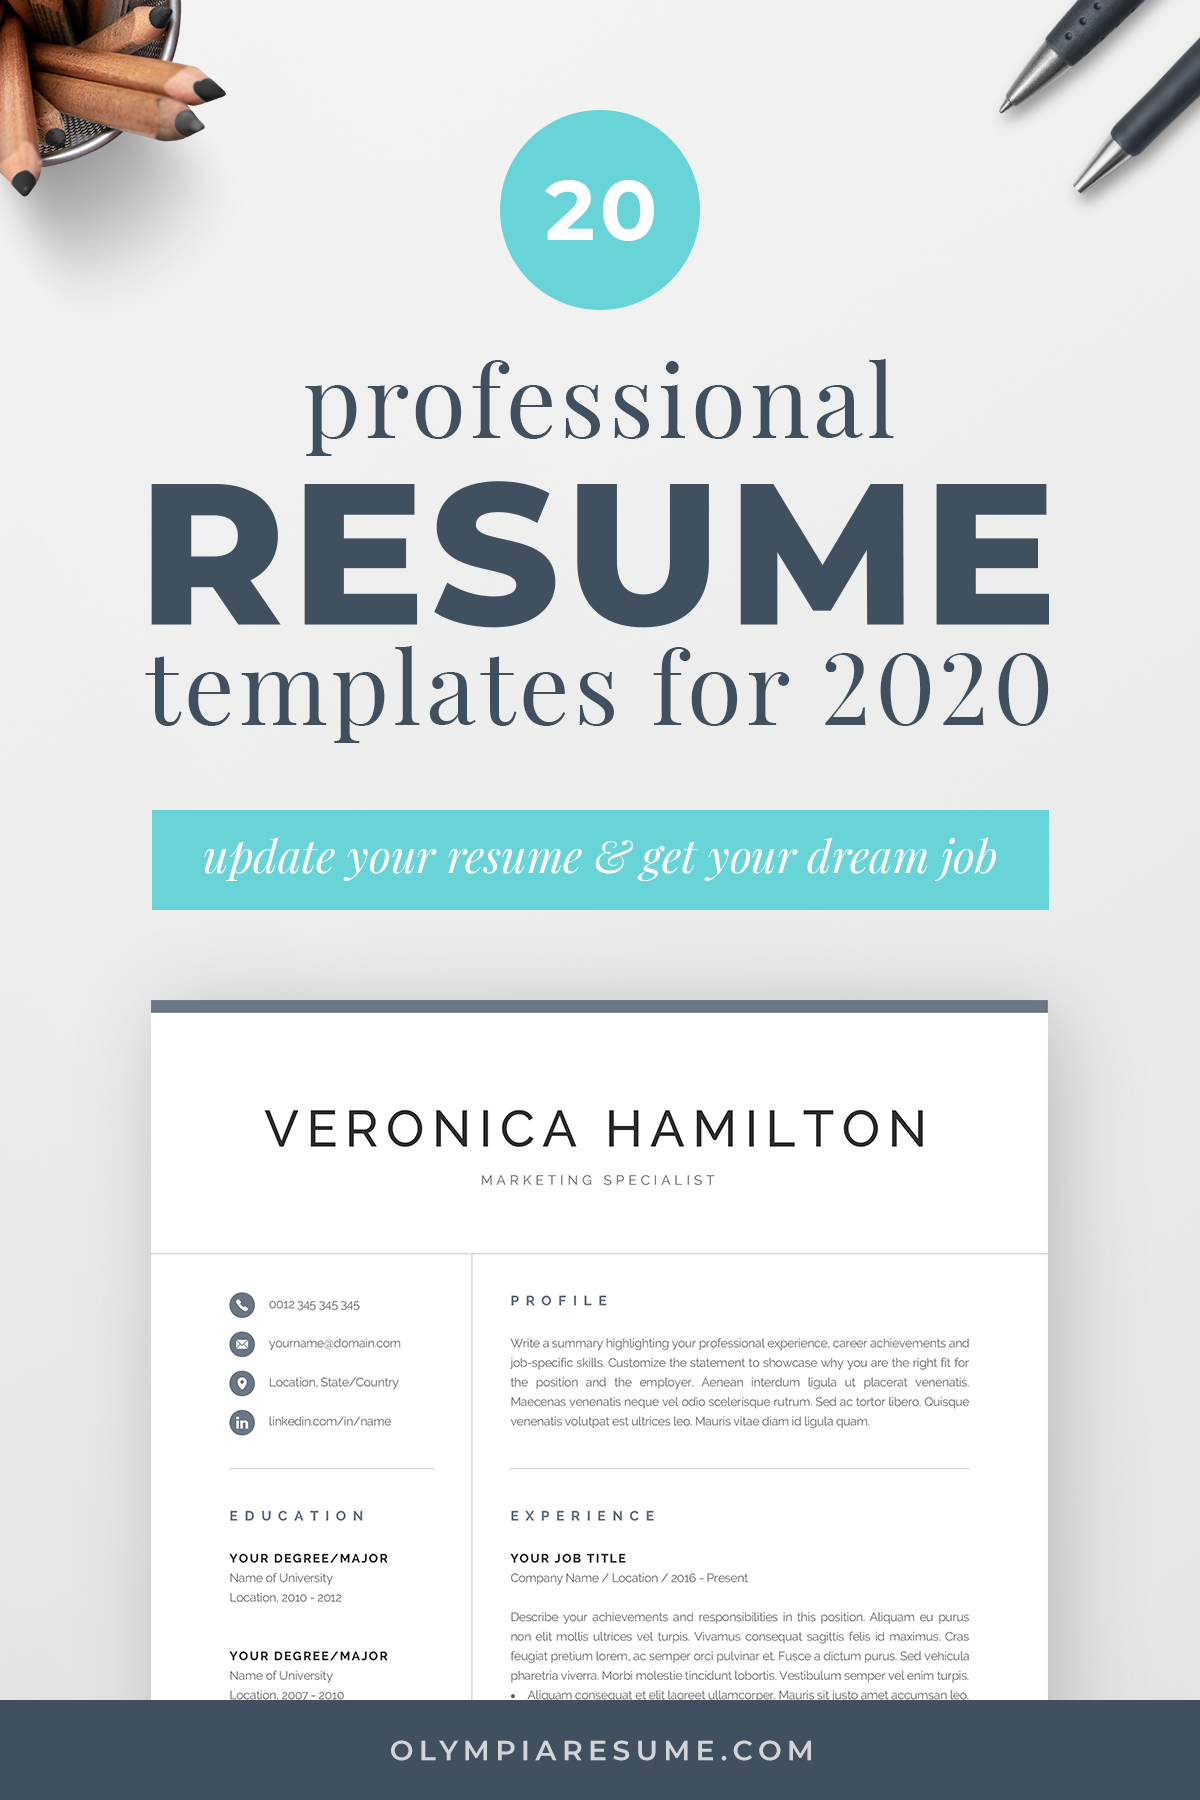 Update Your Resume And Land Your Dream Job In 2020 Choose From A